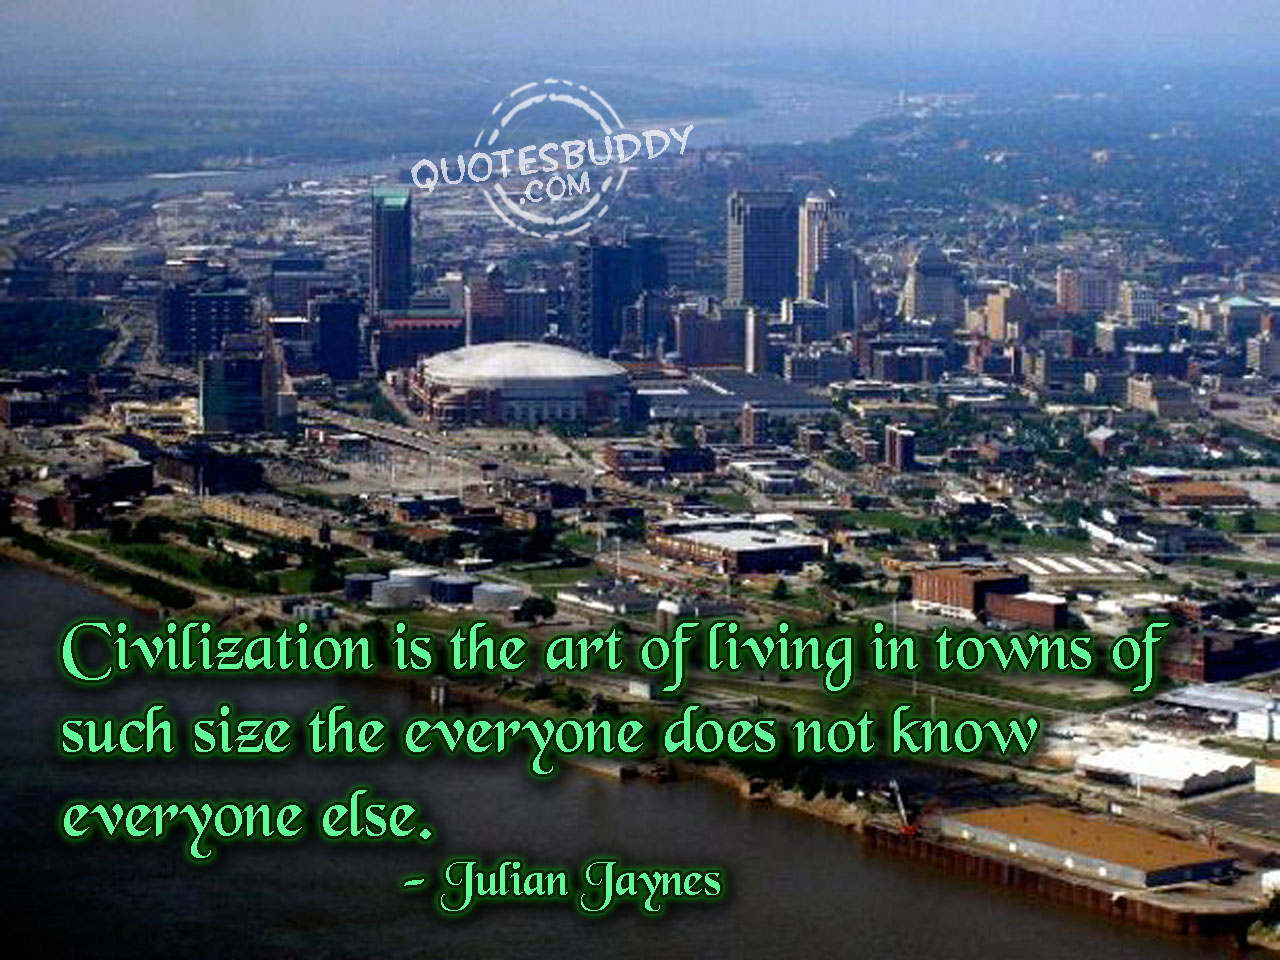 Civilization is the art of living in towns of such size the everyone does not know everyone else. Julian Jaynes